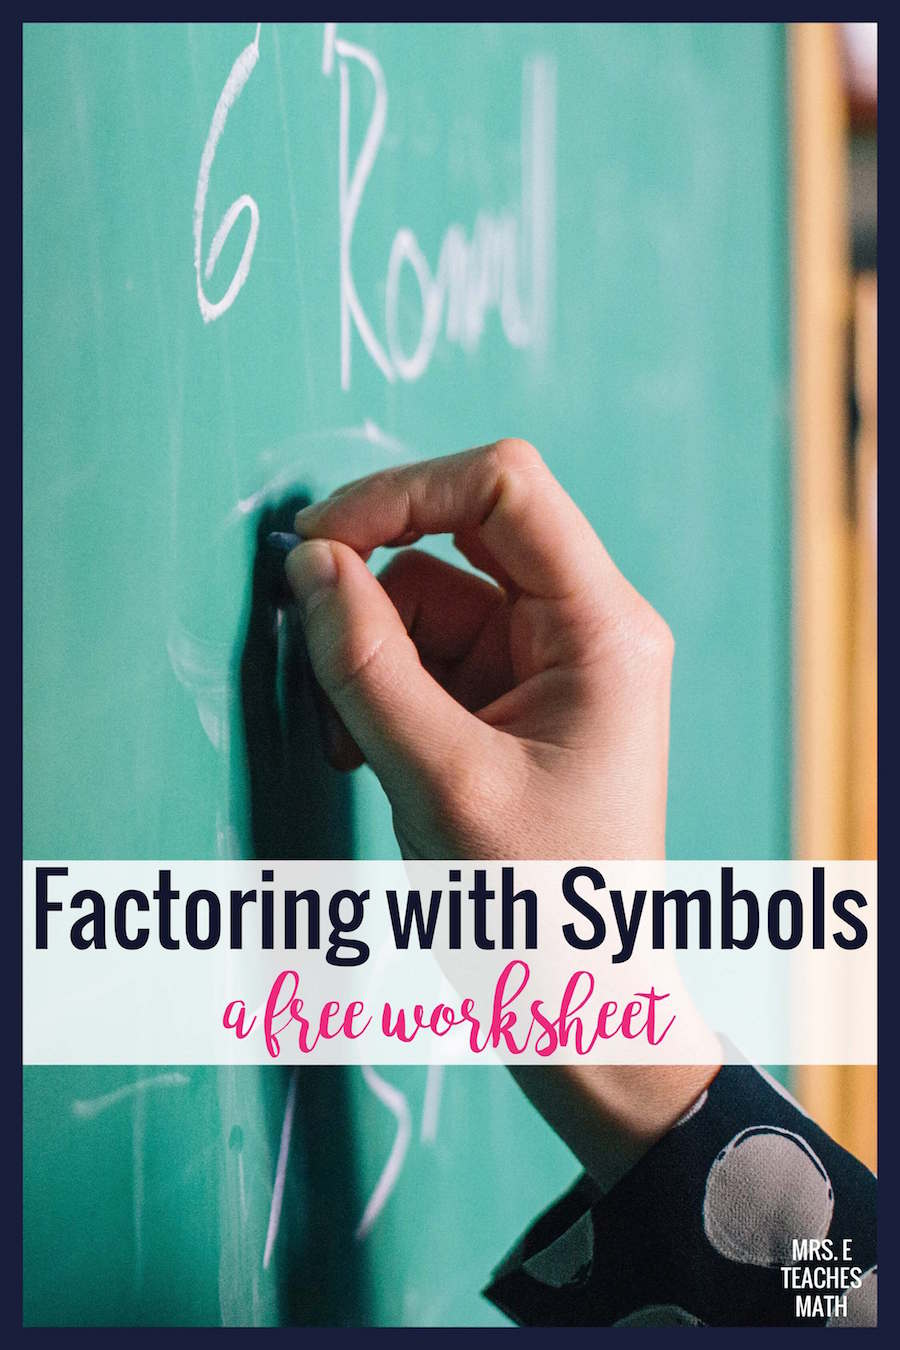 Factoring with Symbols   Mrs  E Teaches Math This is a free worksheet to help Algebra 2 students practice factoring  patterns